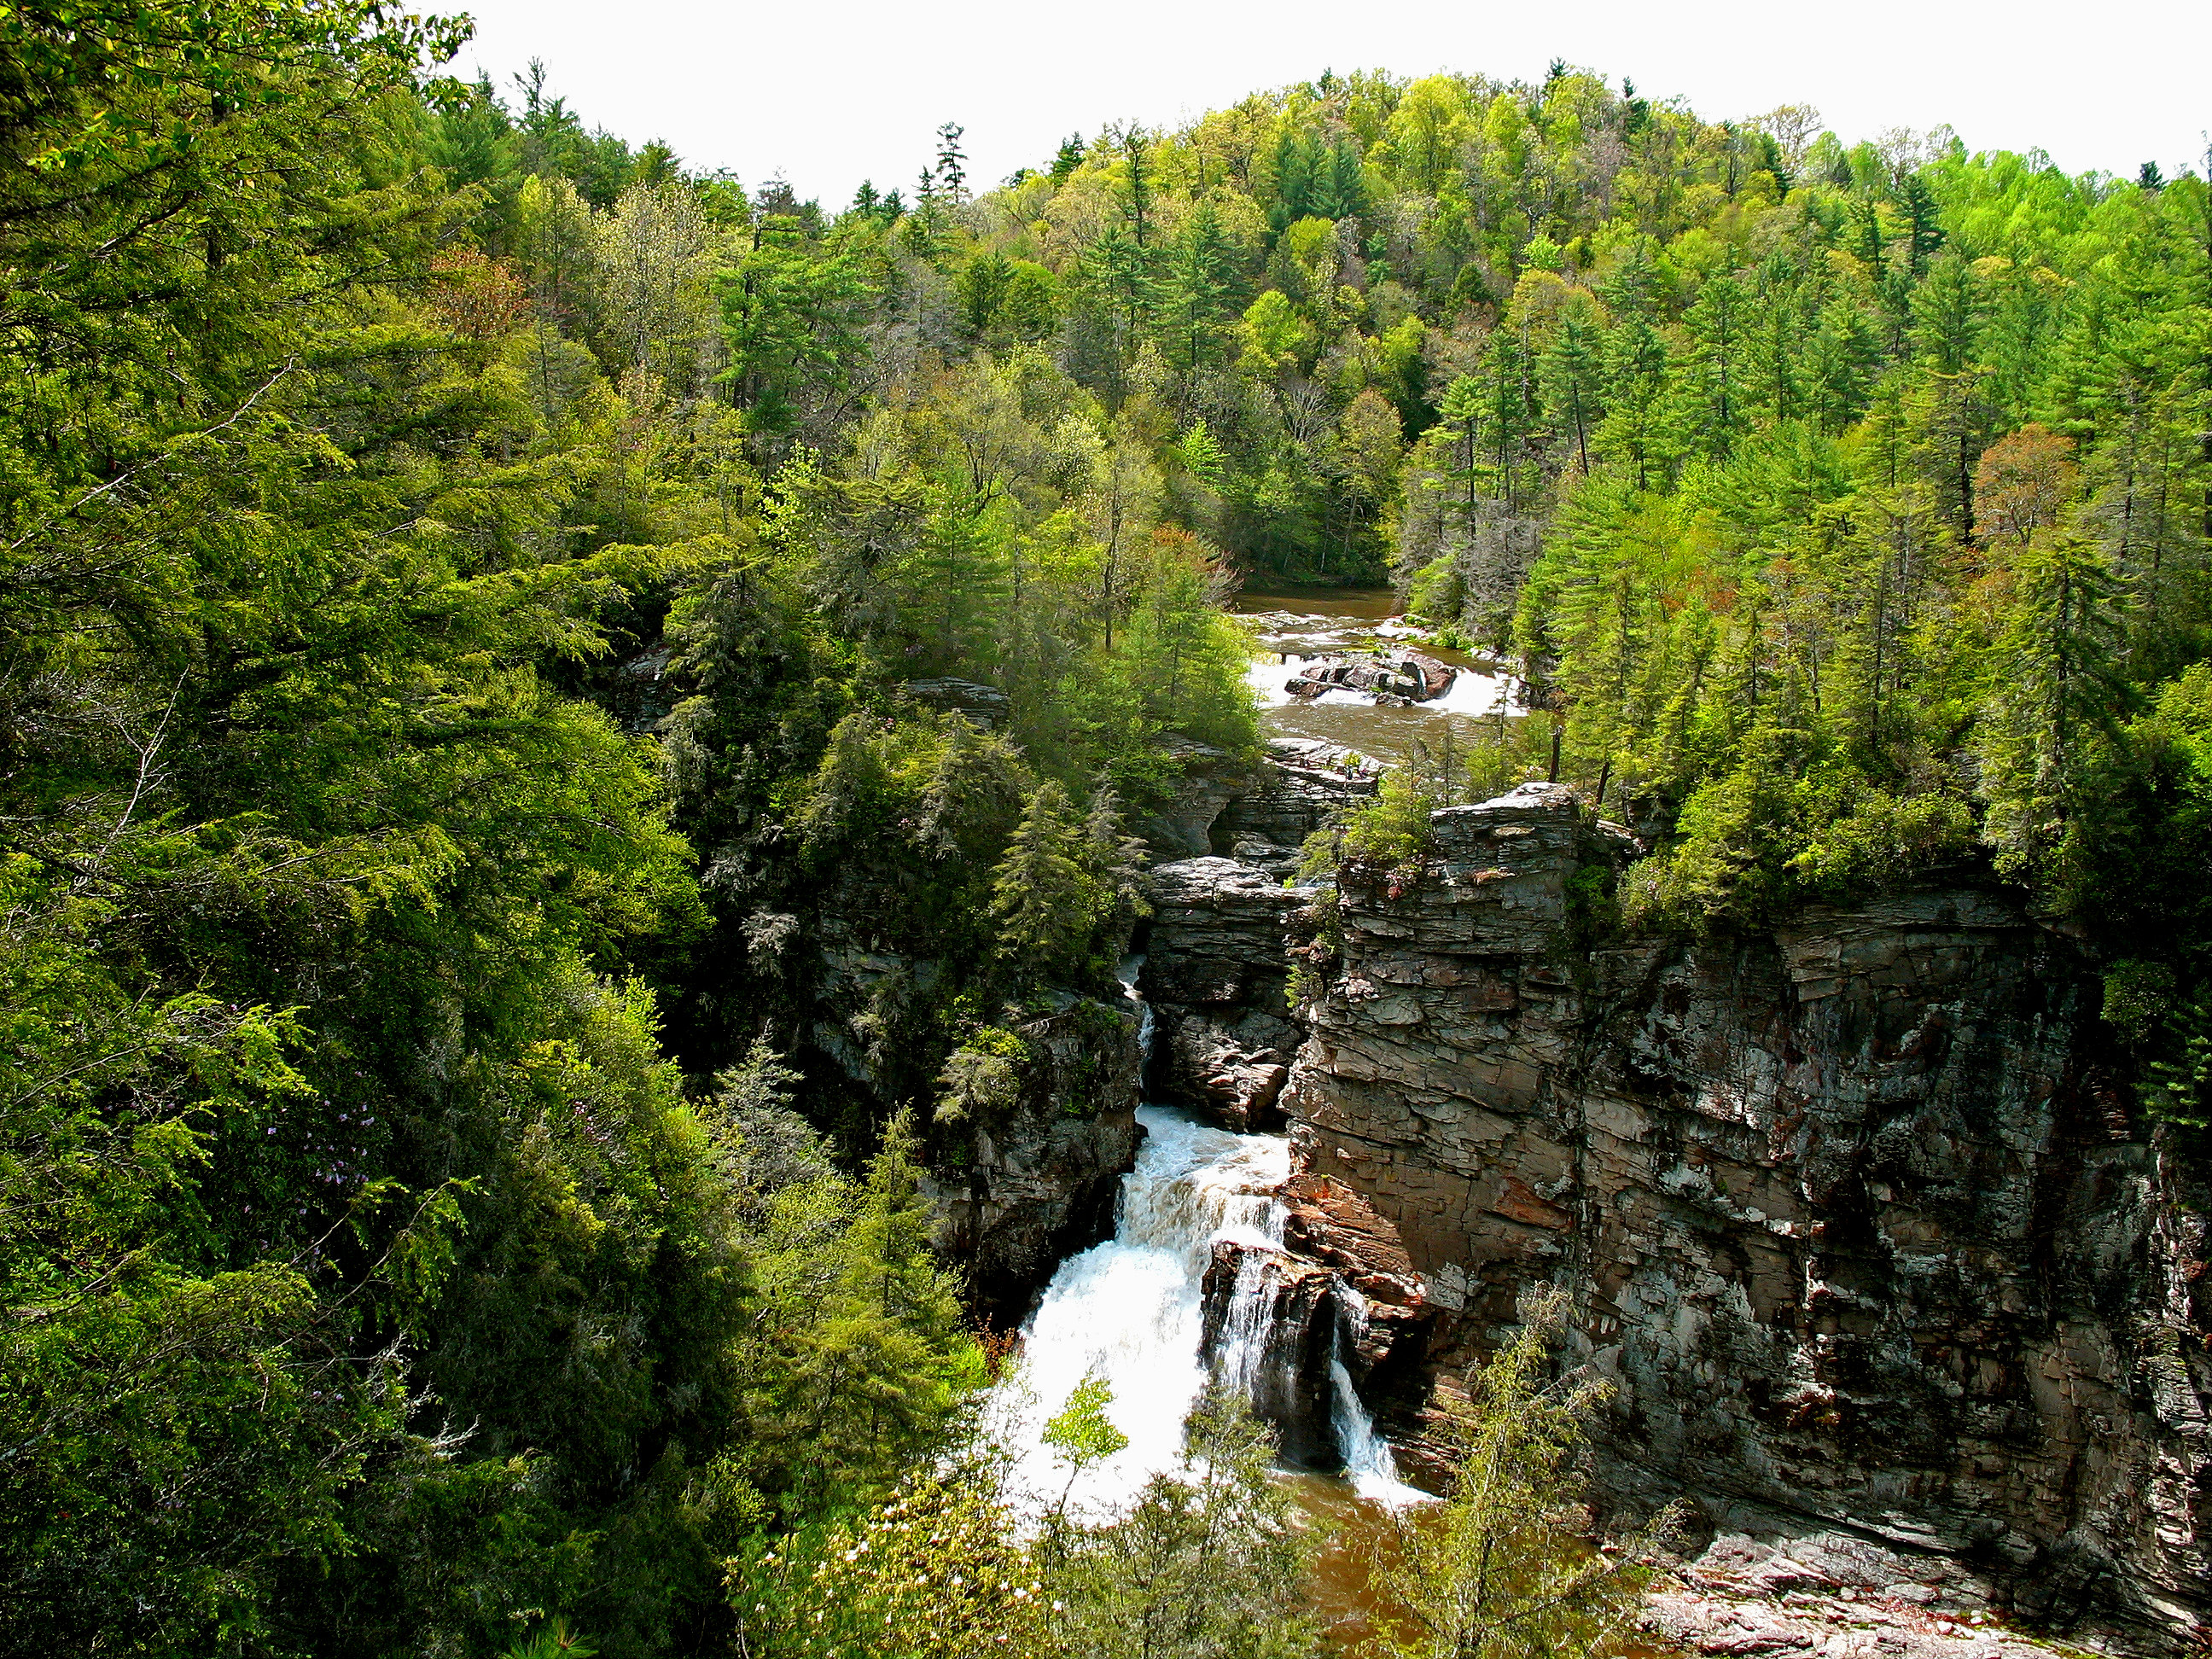 Roaring Linville Falls surrounded by greenery